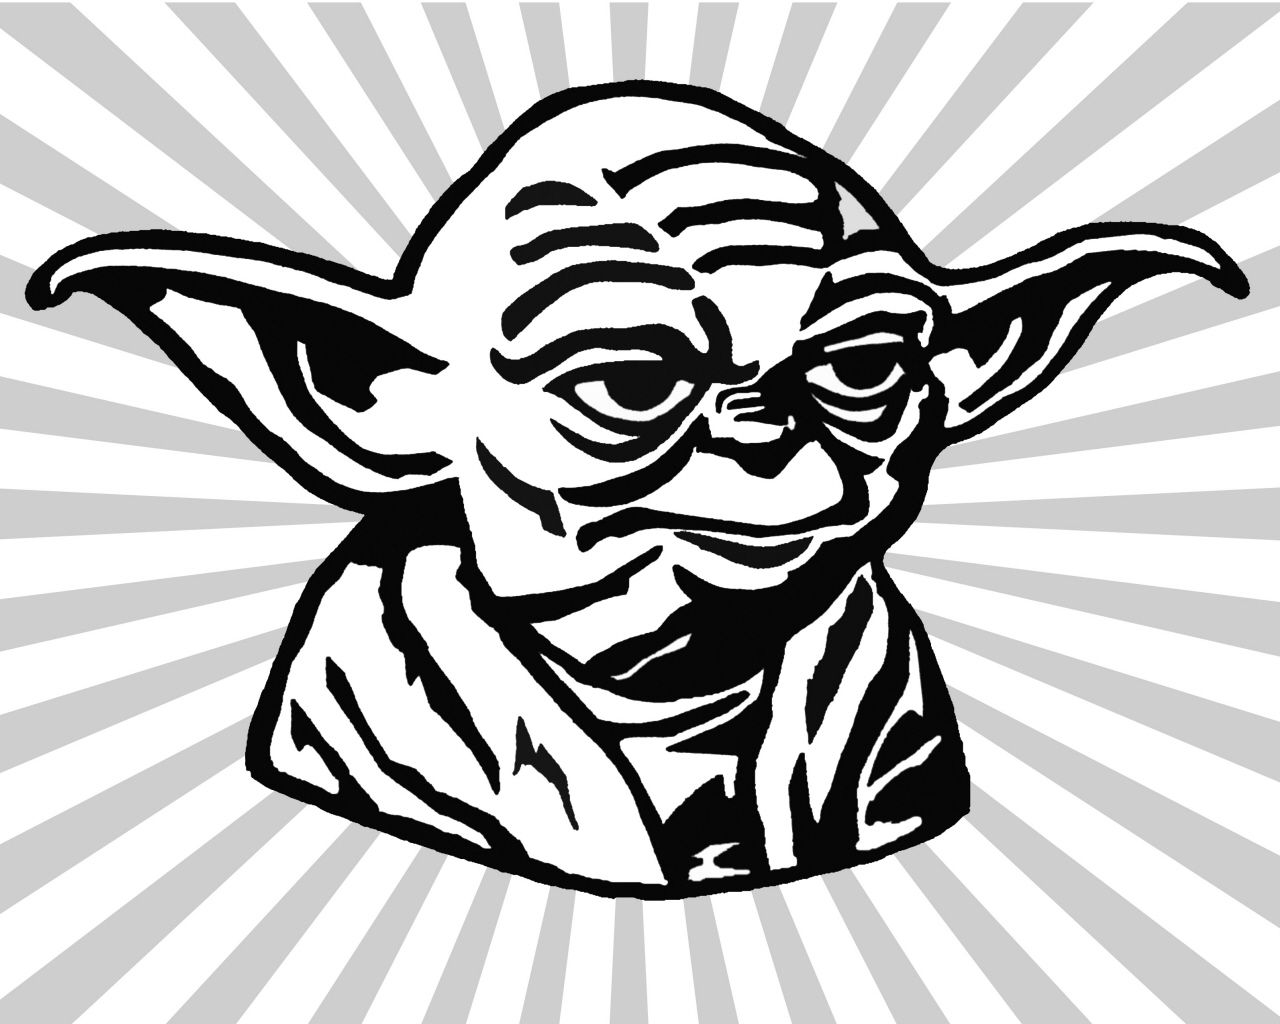 Yoda silhouette clipart free banner royalty free stock Yoda Black And White Clipart - Clipart Kid | characters ... banner royalty free stock